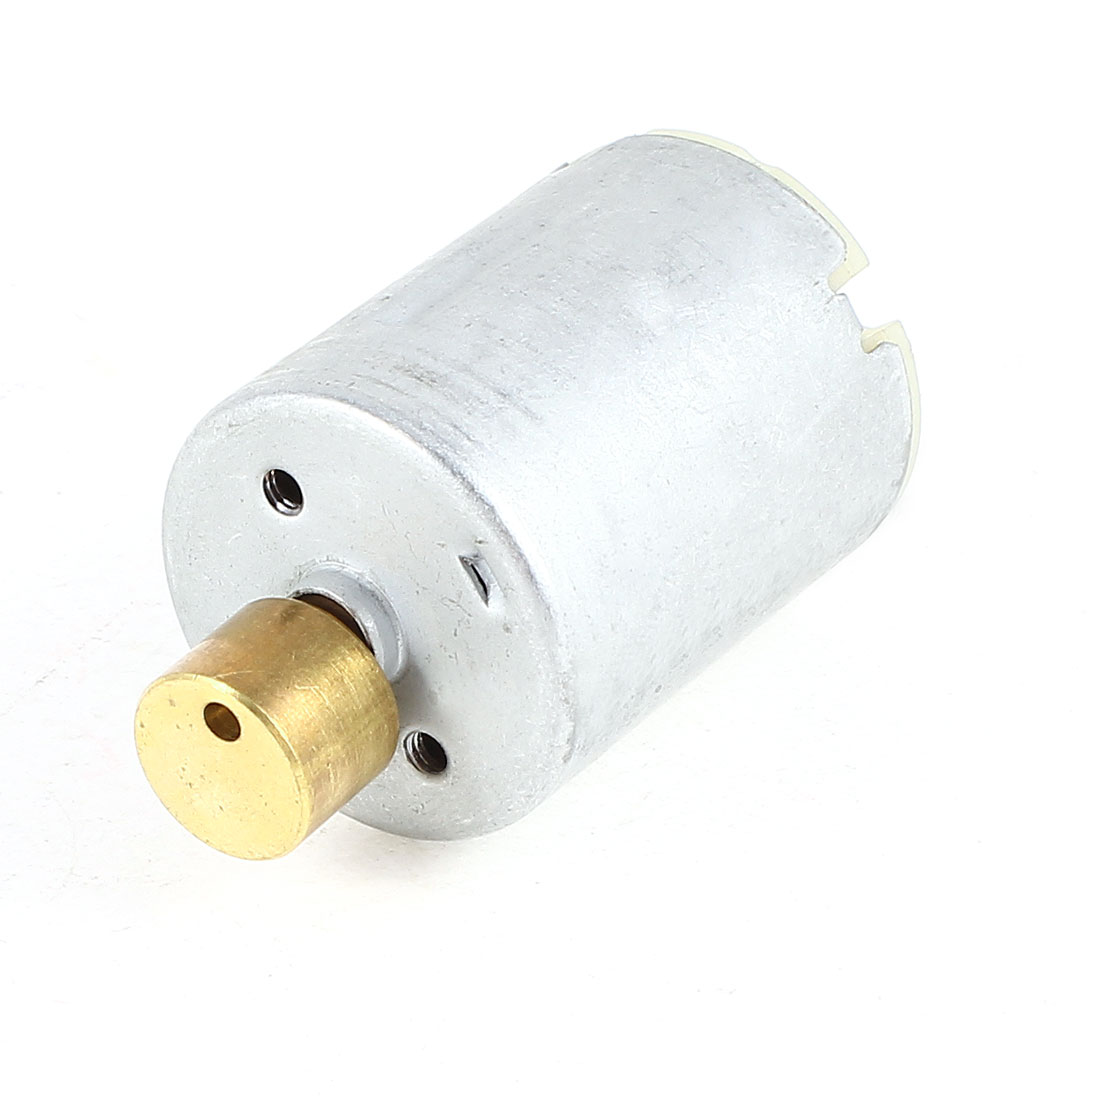 RC Helicopter Toy Massager Metal Shell Micro Vibration Motor DC 1.5-6V 3000RPM